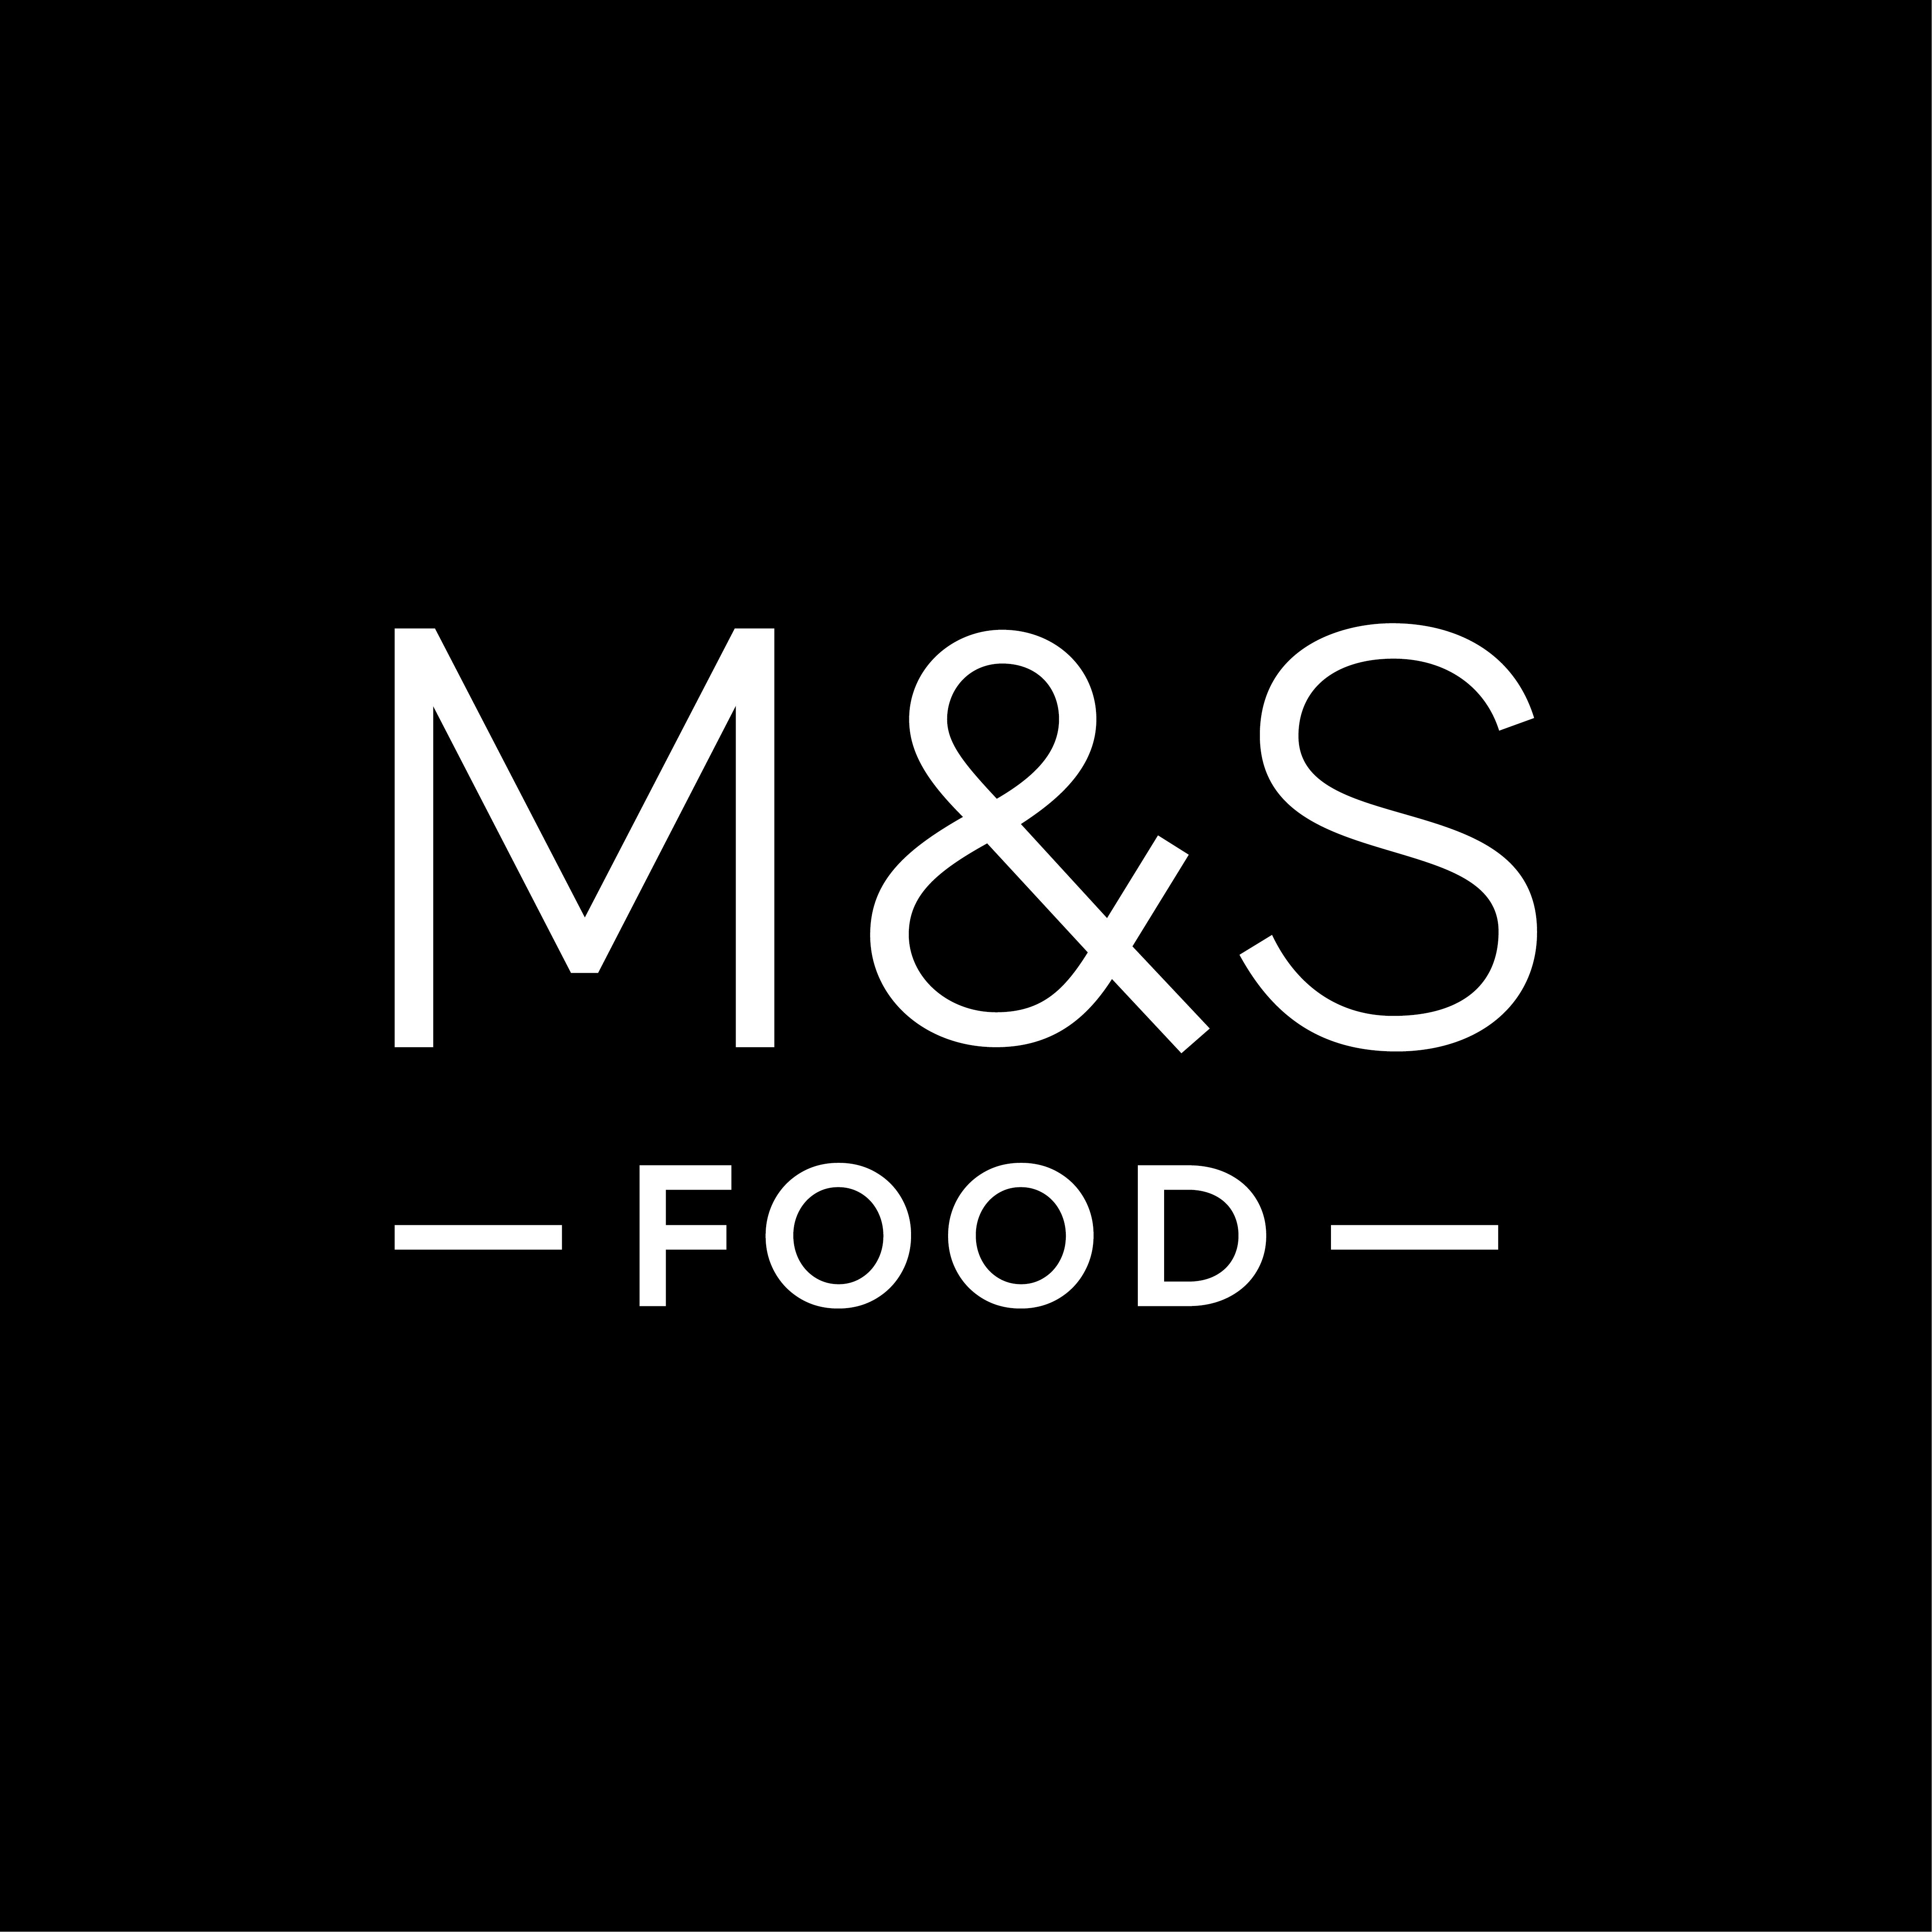 Logo reads 'M&S Food' in white font on a black background.